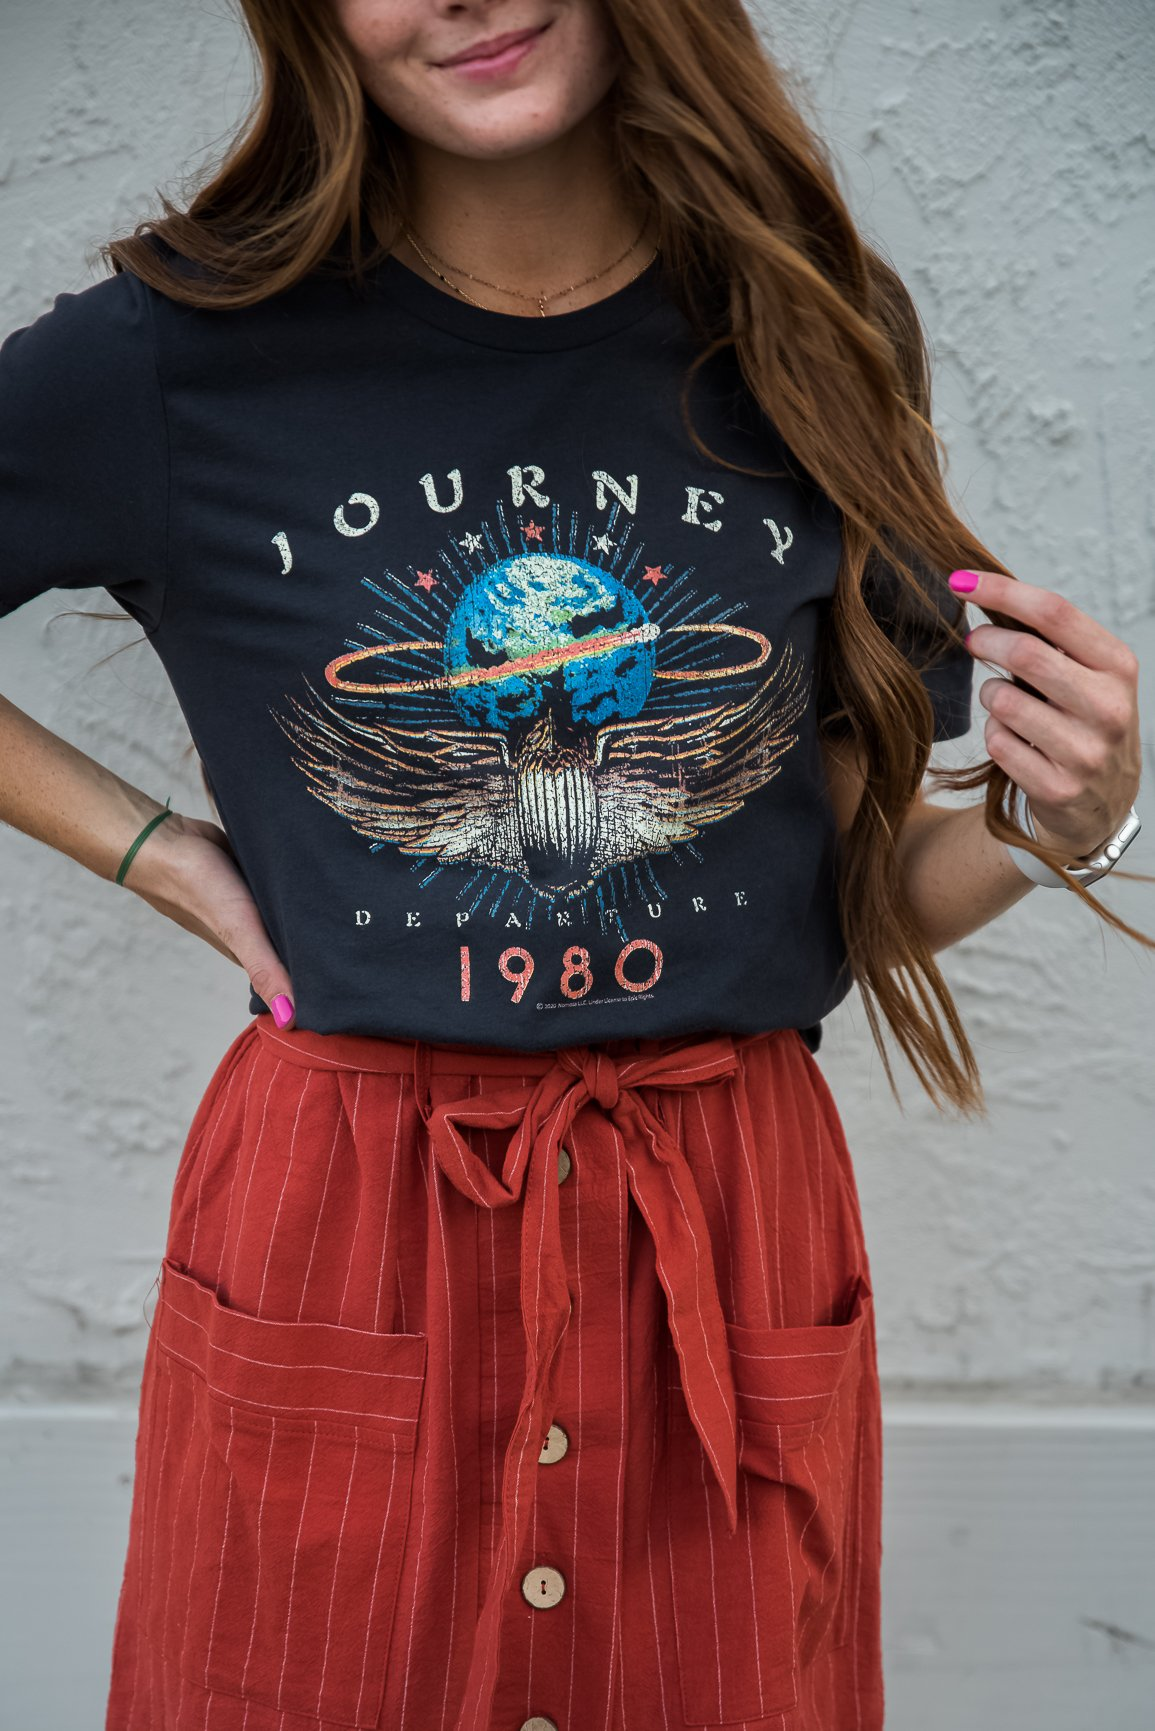 Journey Departure 1980 Graphic Tee in Smoke - Southern Rae's